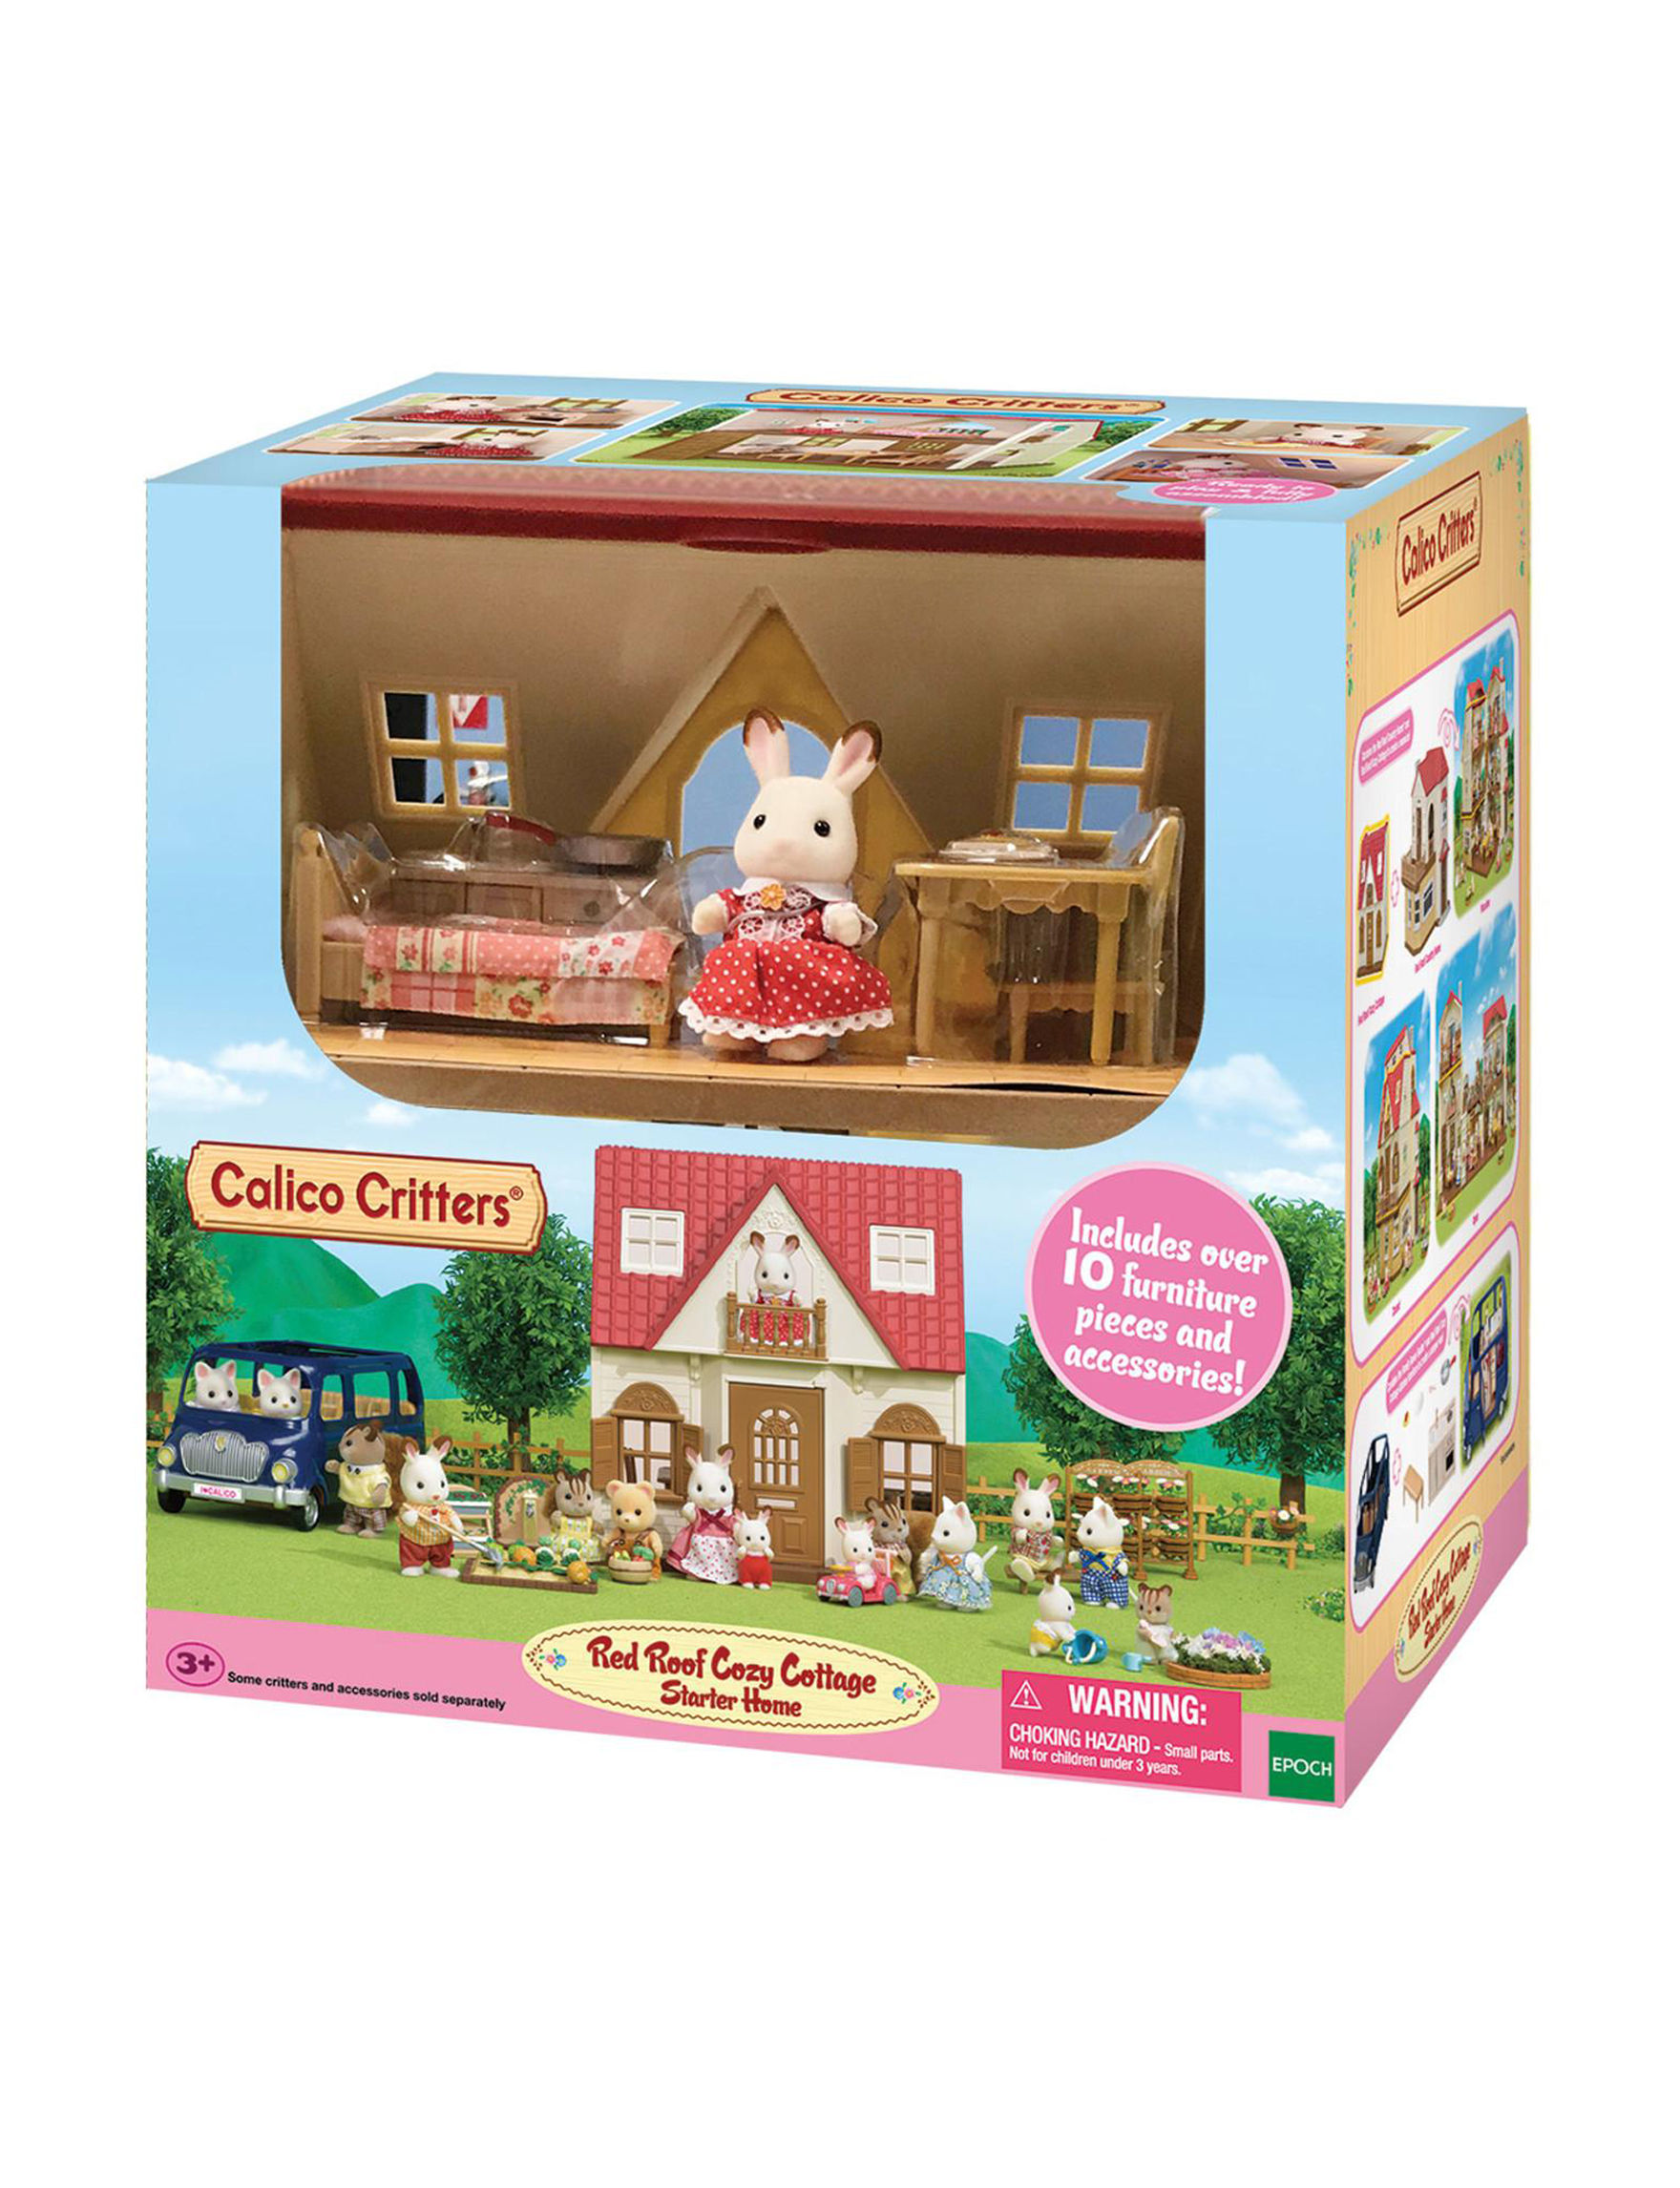 Calico Critters White / Multi